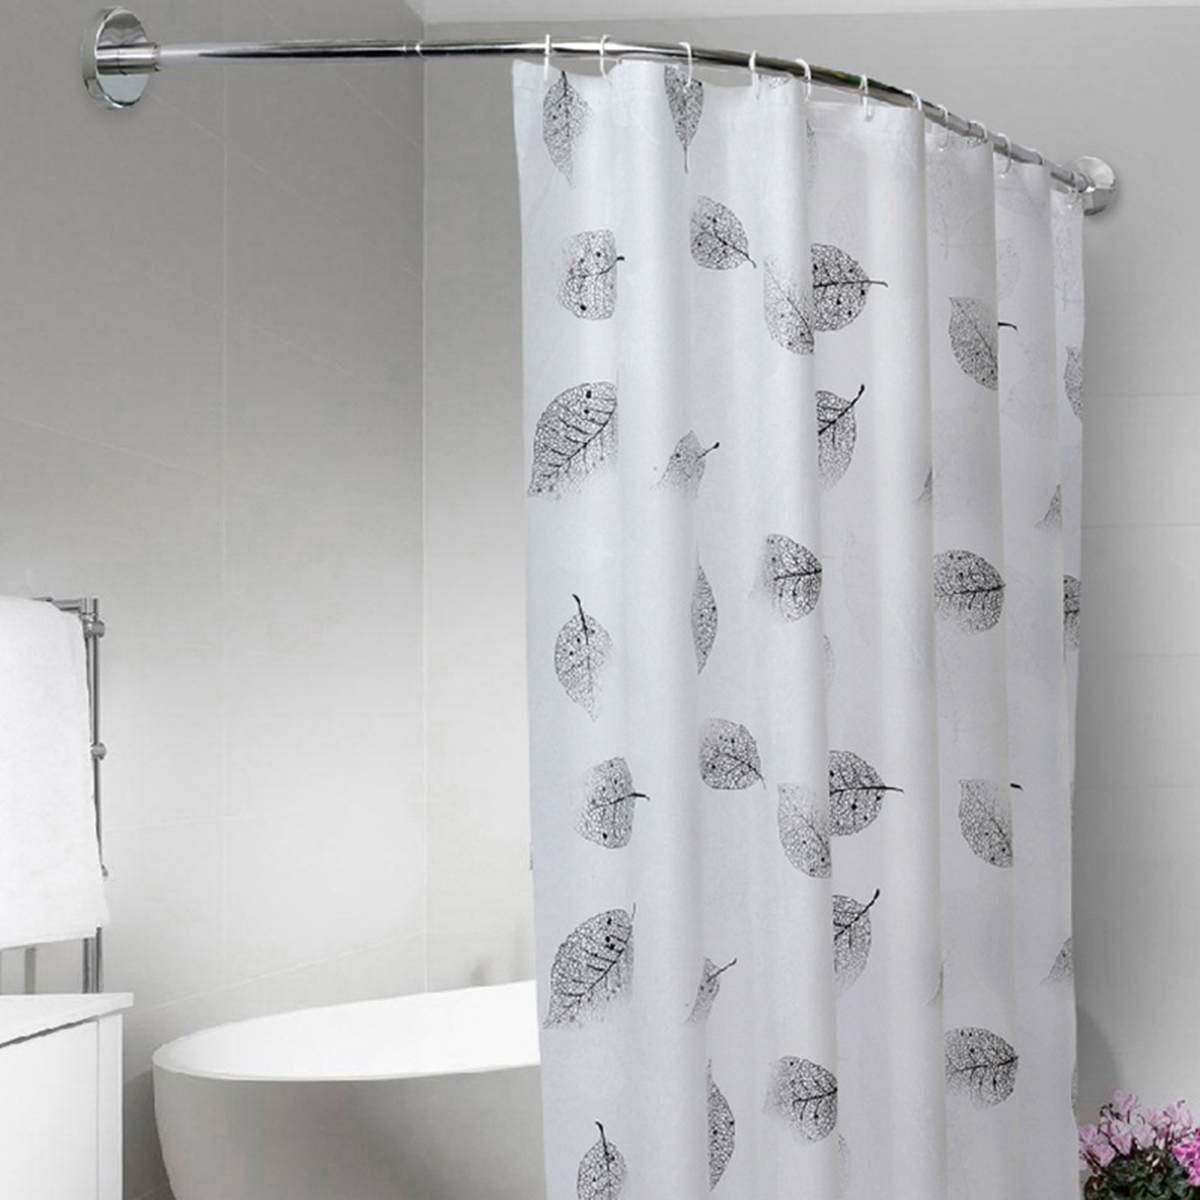 12 Pcs Bath Shower Curtain Poles Rod